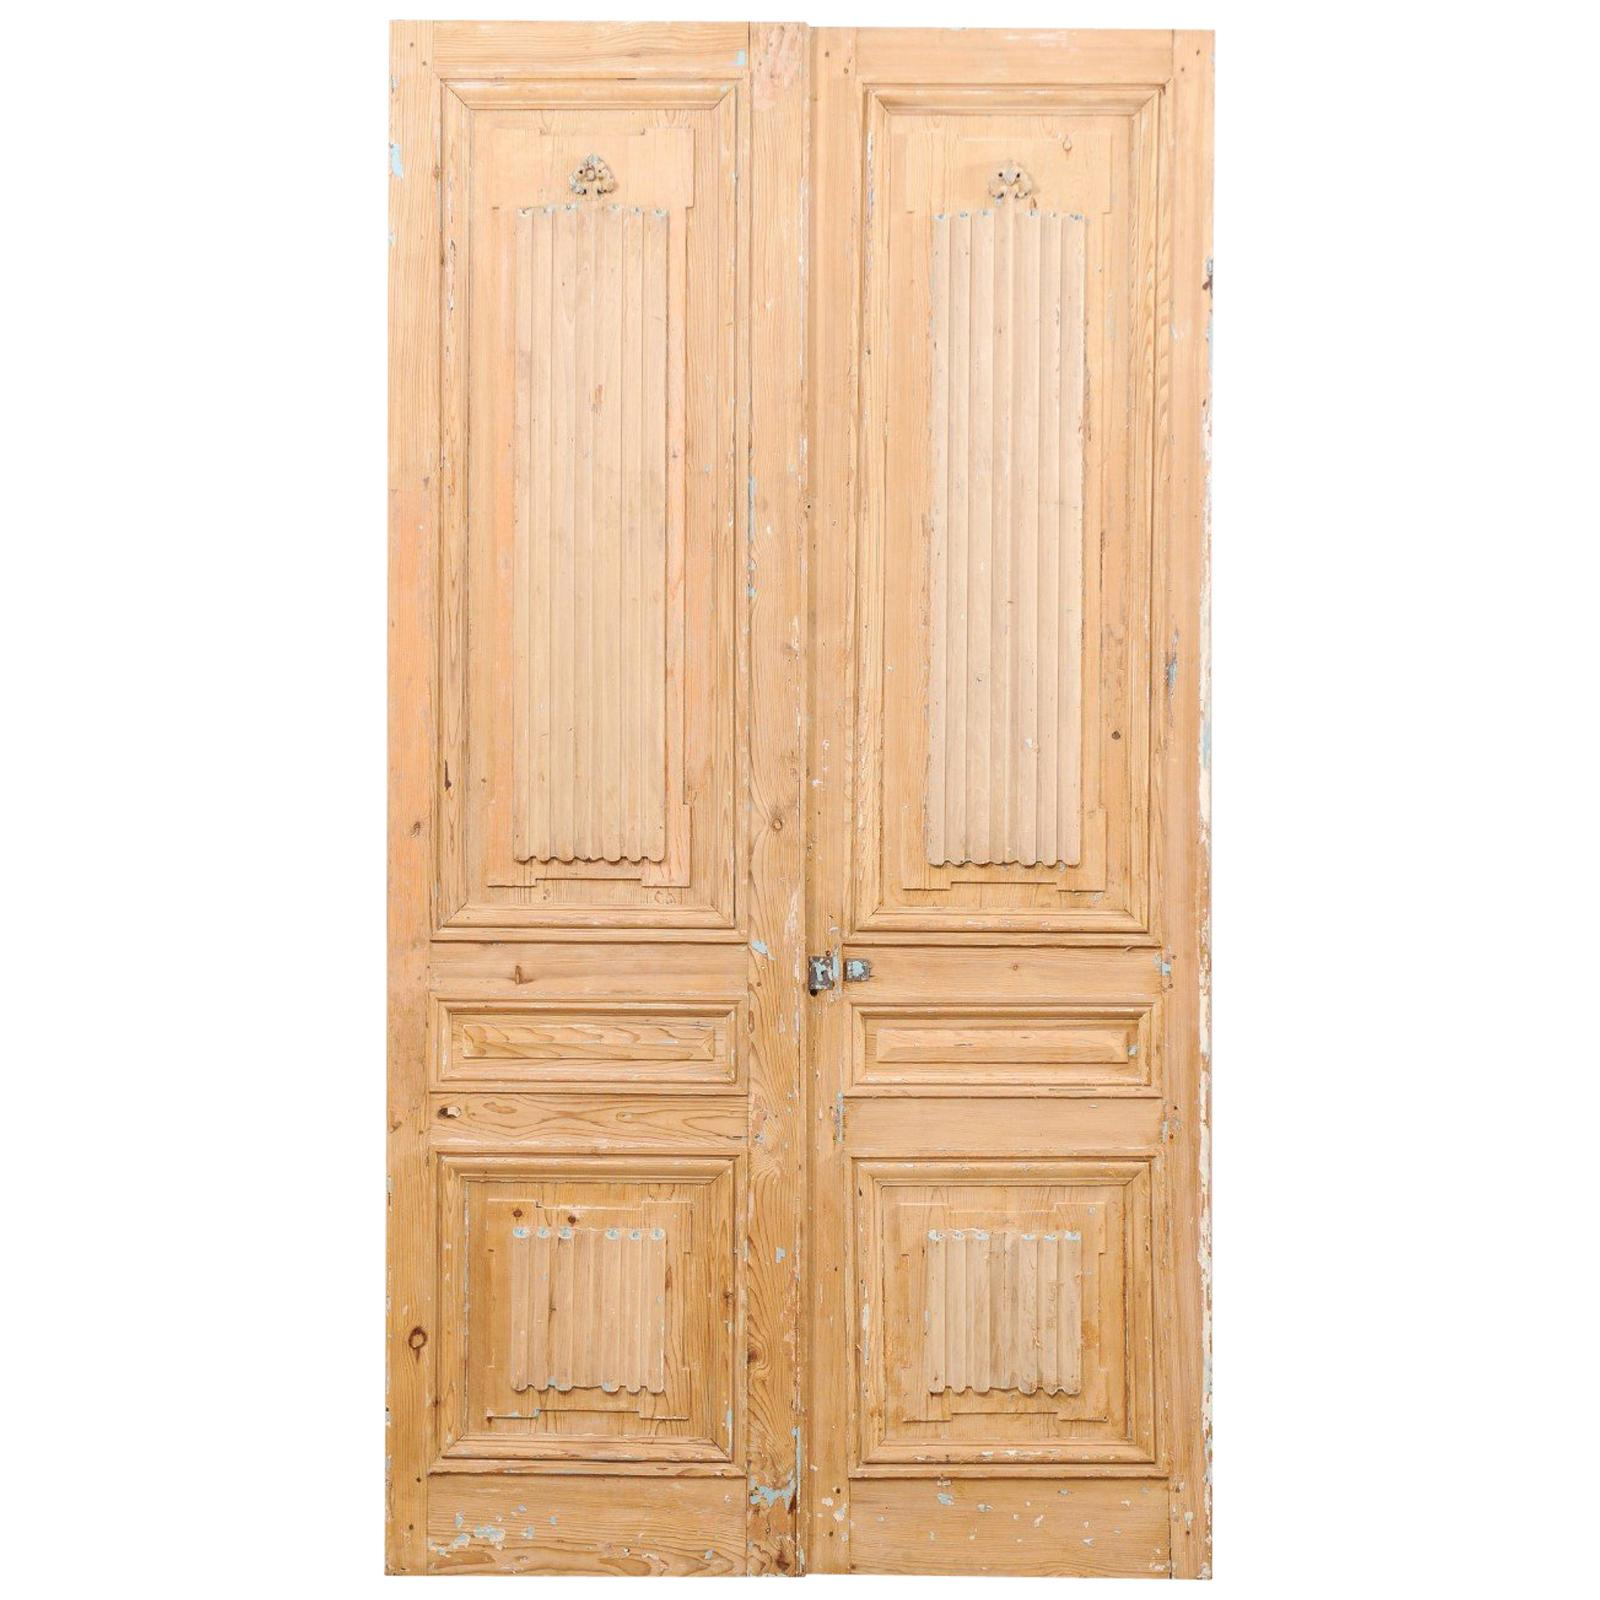 Pair of French 19th Century Linenfold Carved Wood Doors